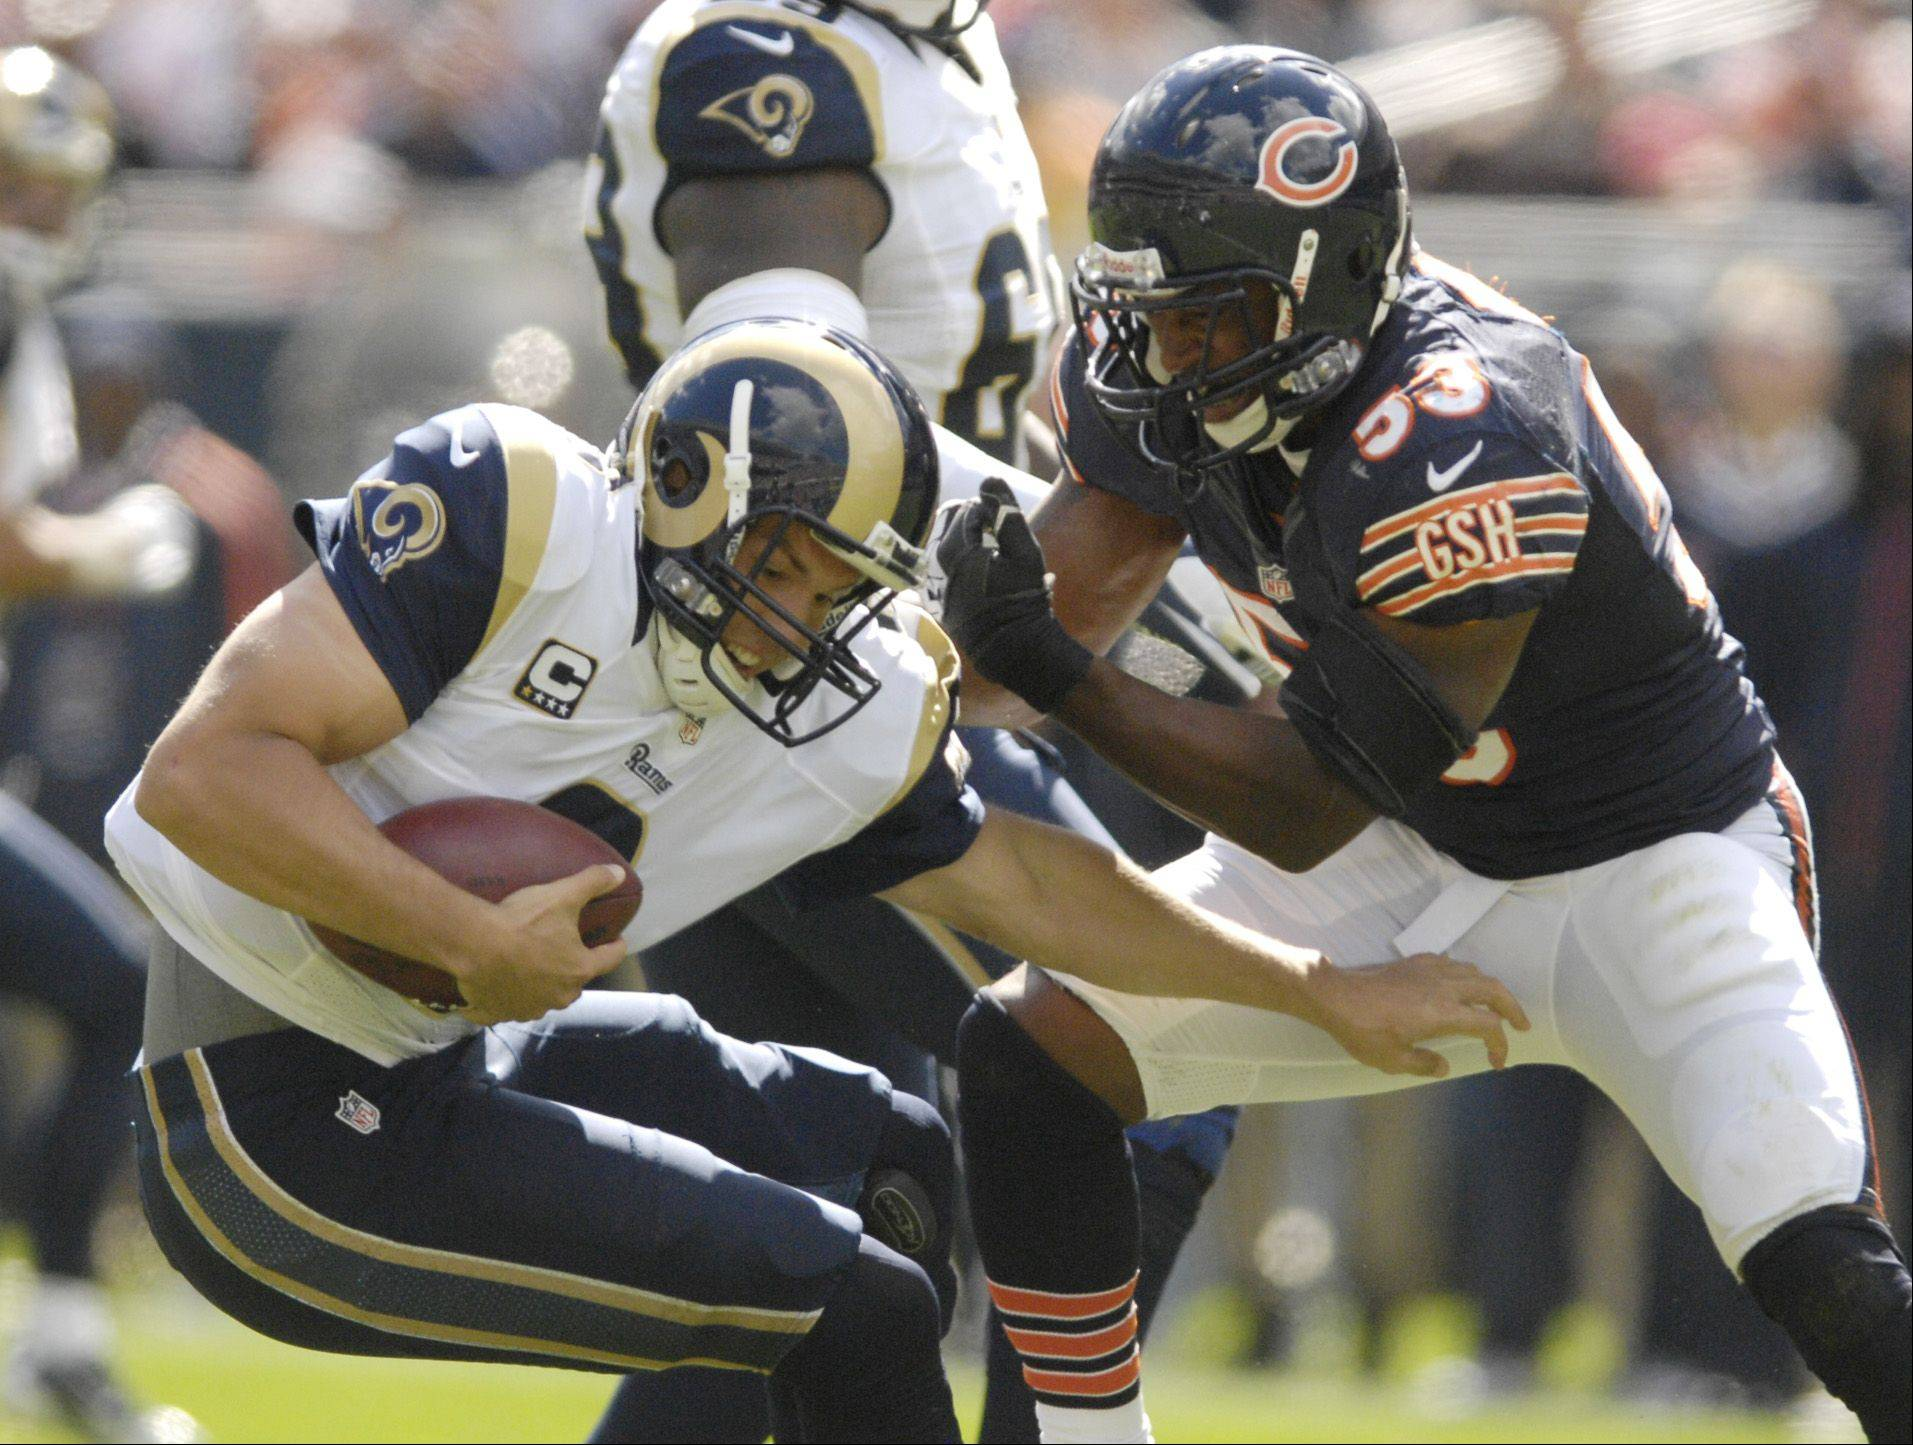 Rams quarterback Sam Bradford is sacked by Nick Roach during the Bears' Week 3 victory at Soldier Field.